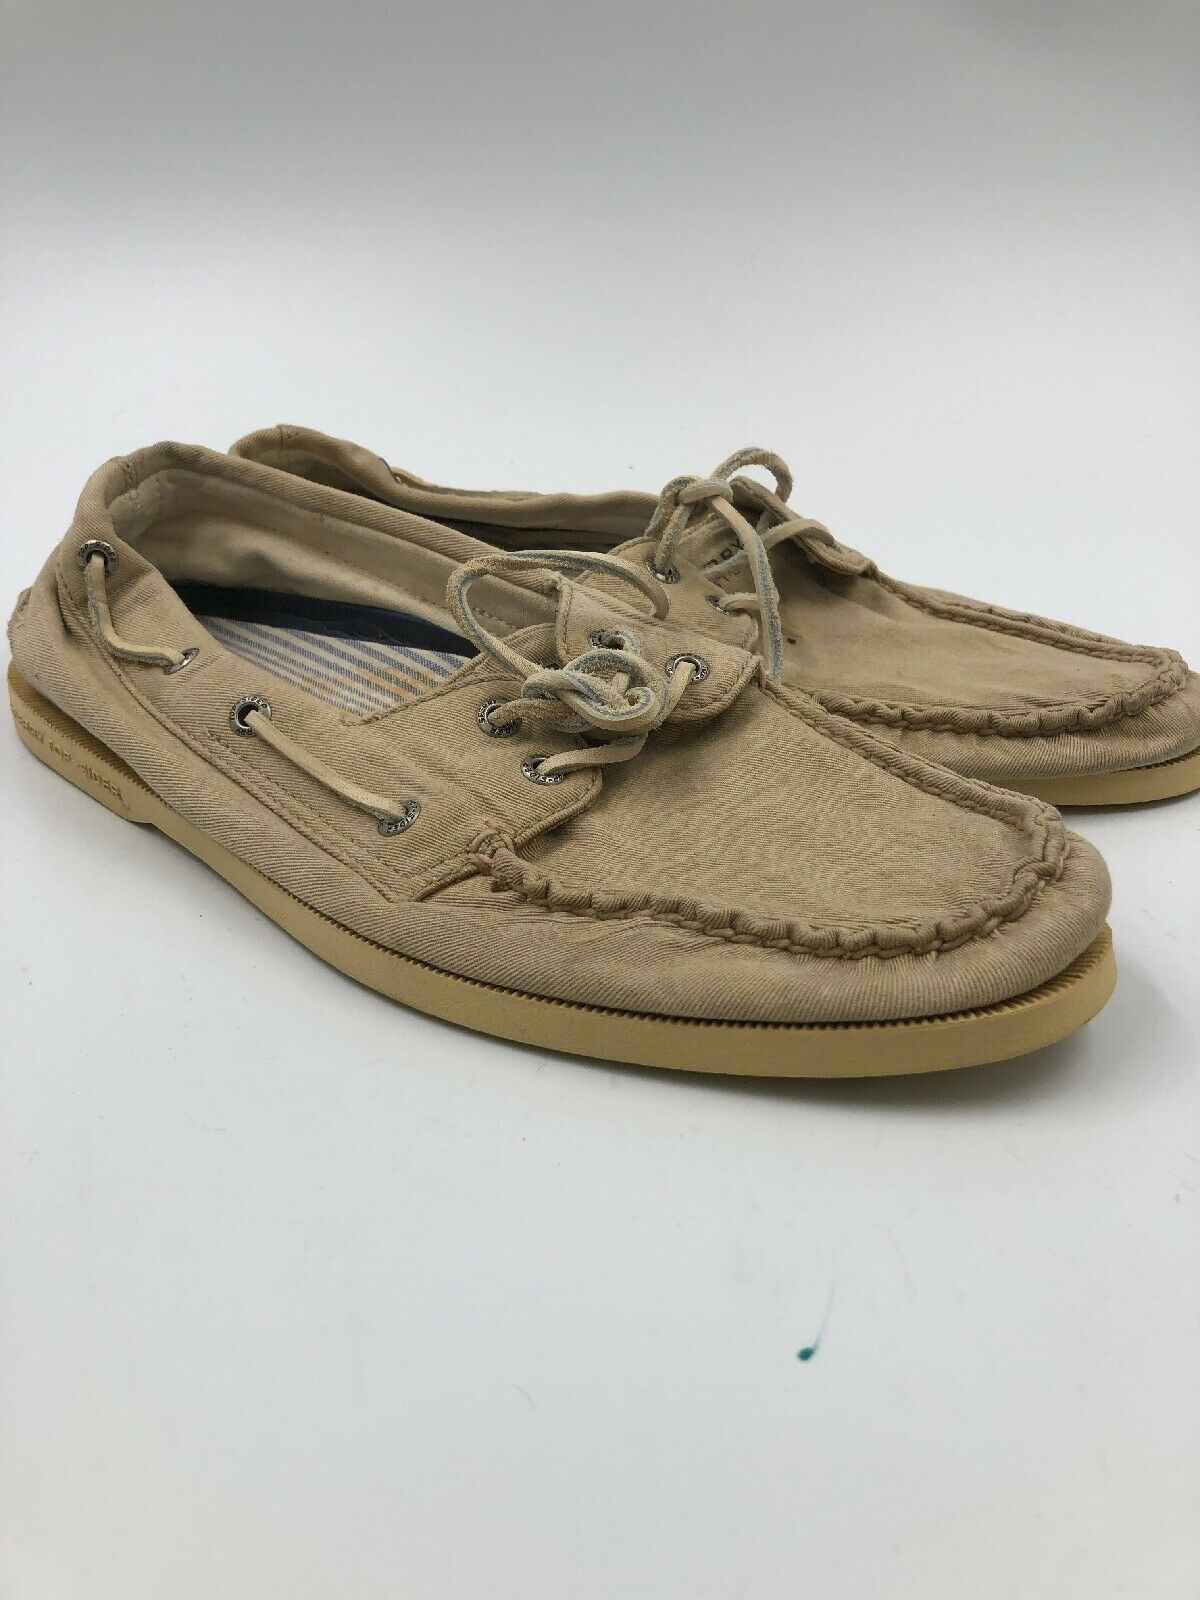 SPERRY TOP SIDER MEN'S TAN CANVAS BOAT CASUAL LACE-UP SHOES SIZE 10.5 MEDIUM